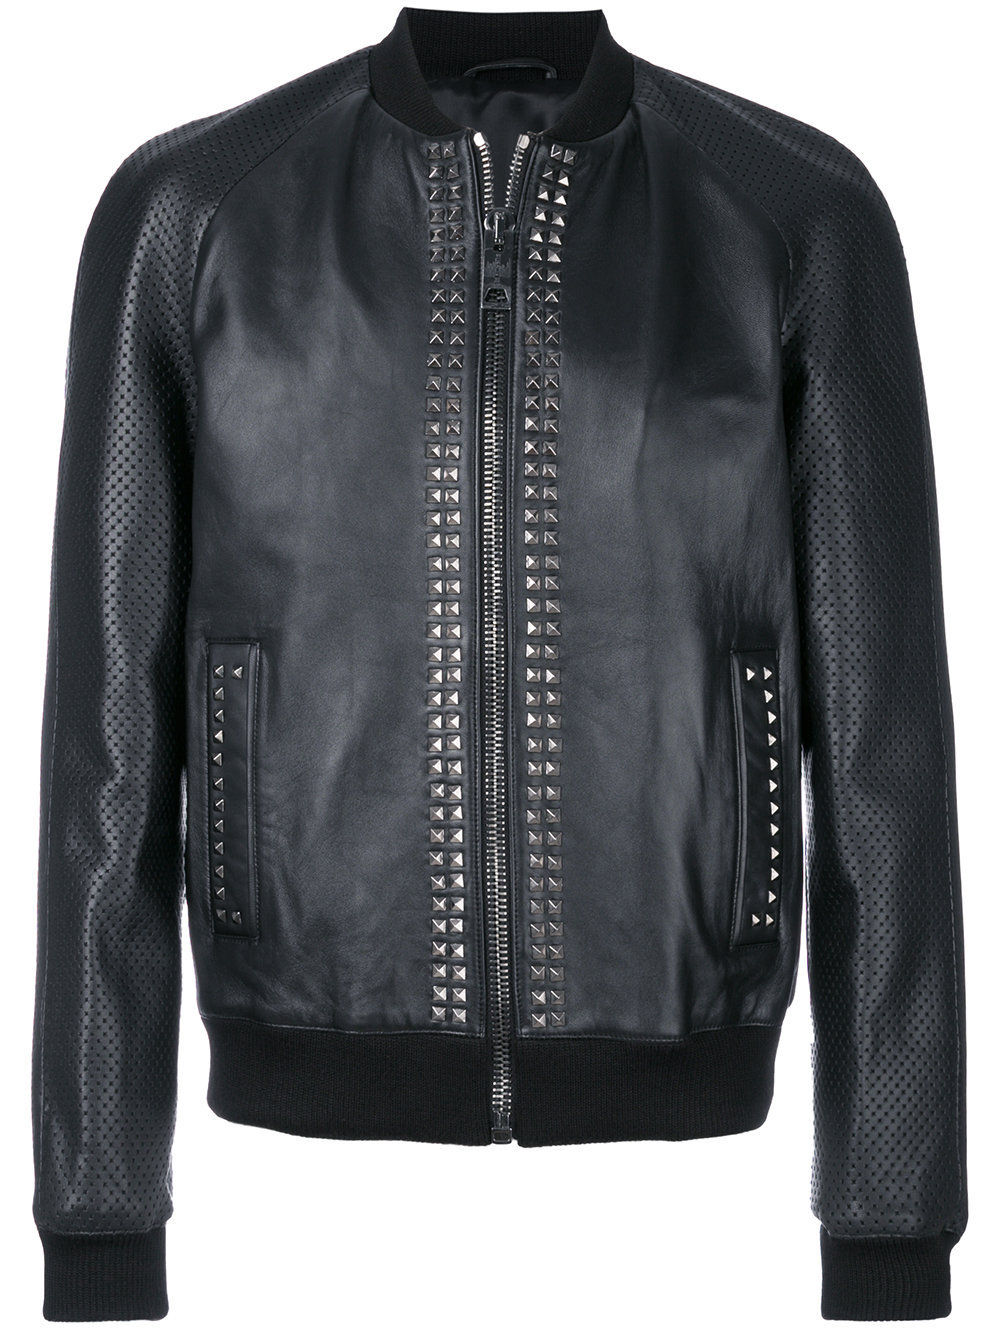 Mens Studded Bomber Designer Leather Jackets 01.jpg